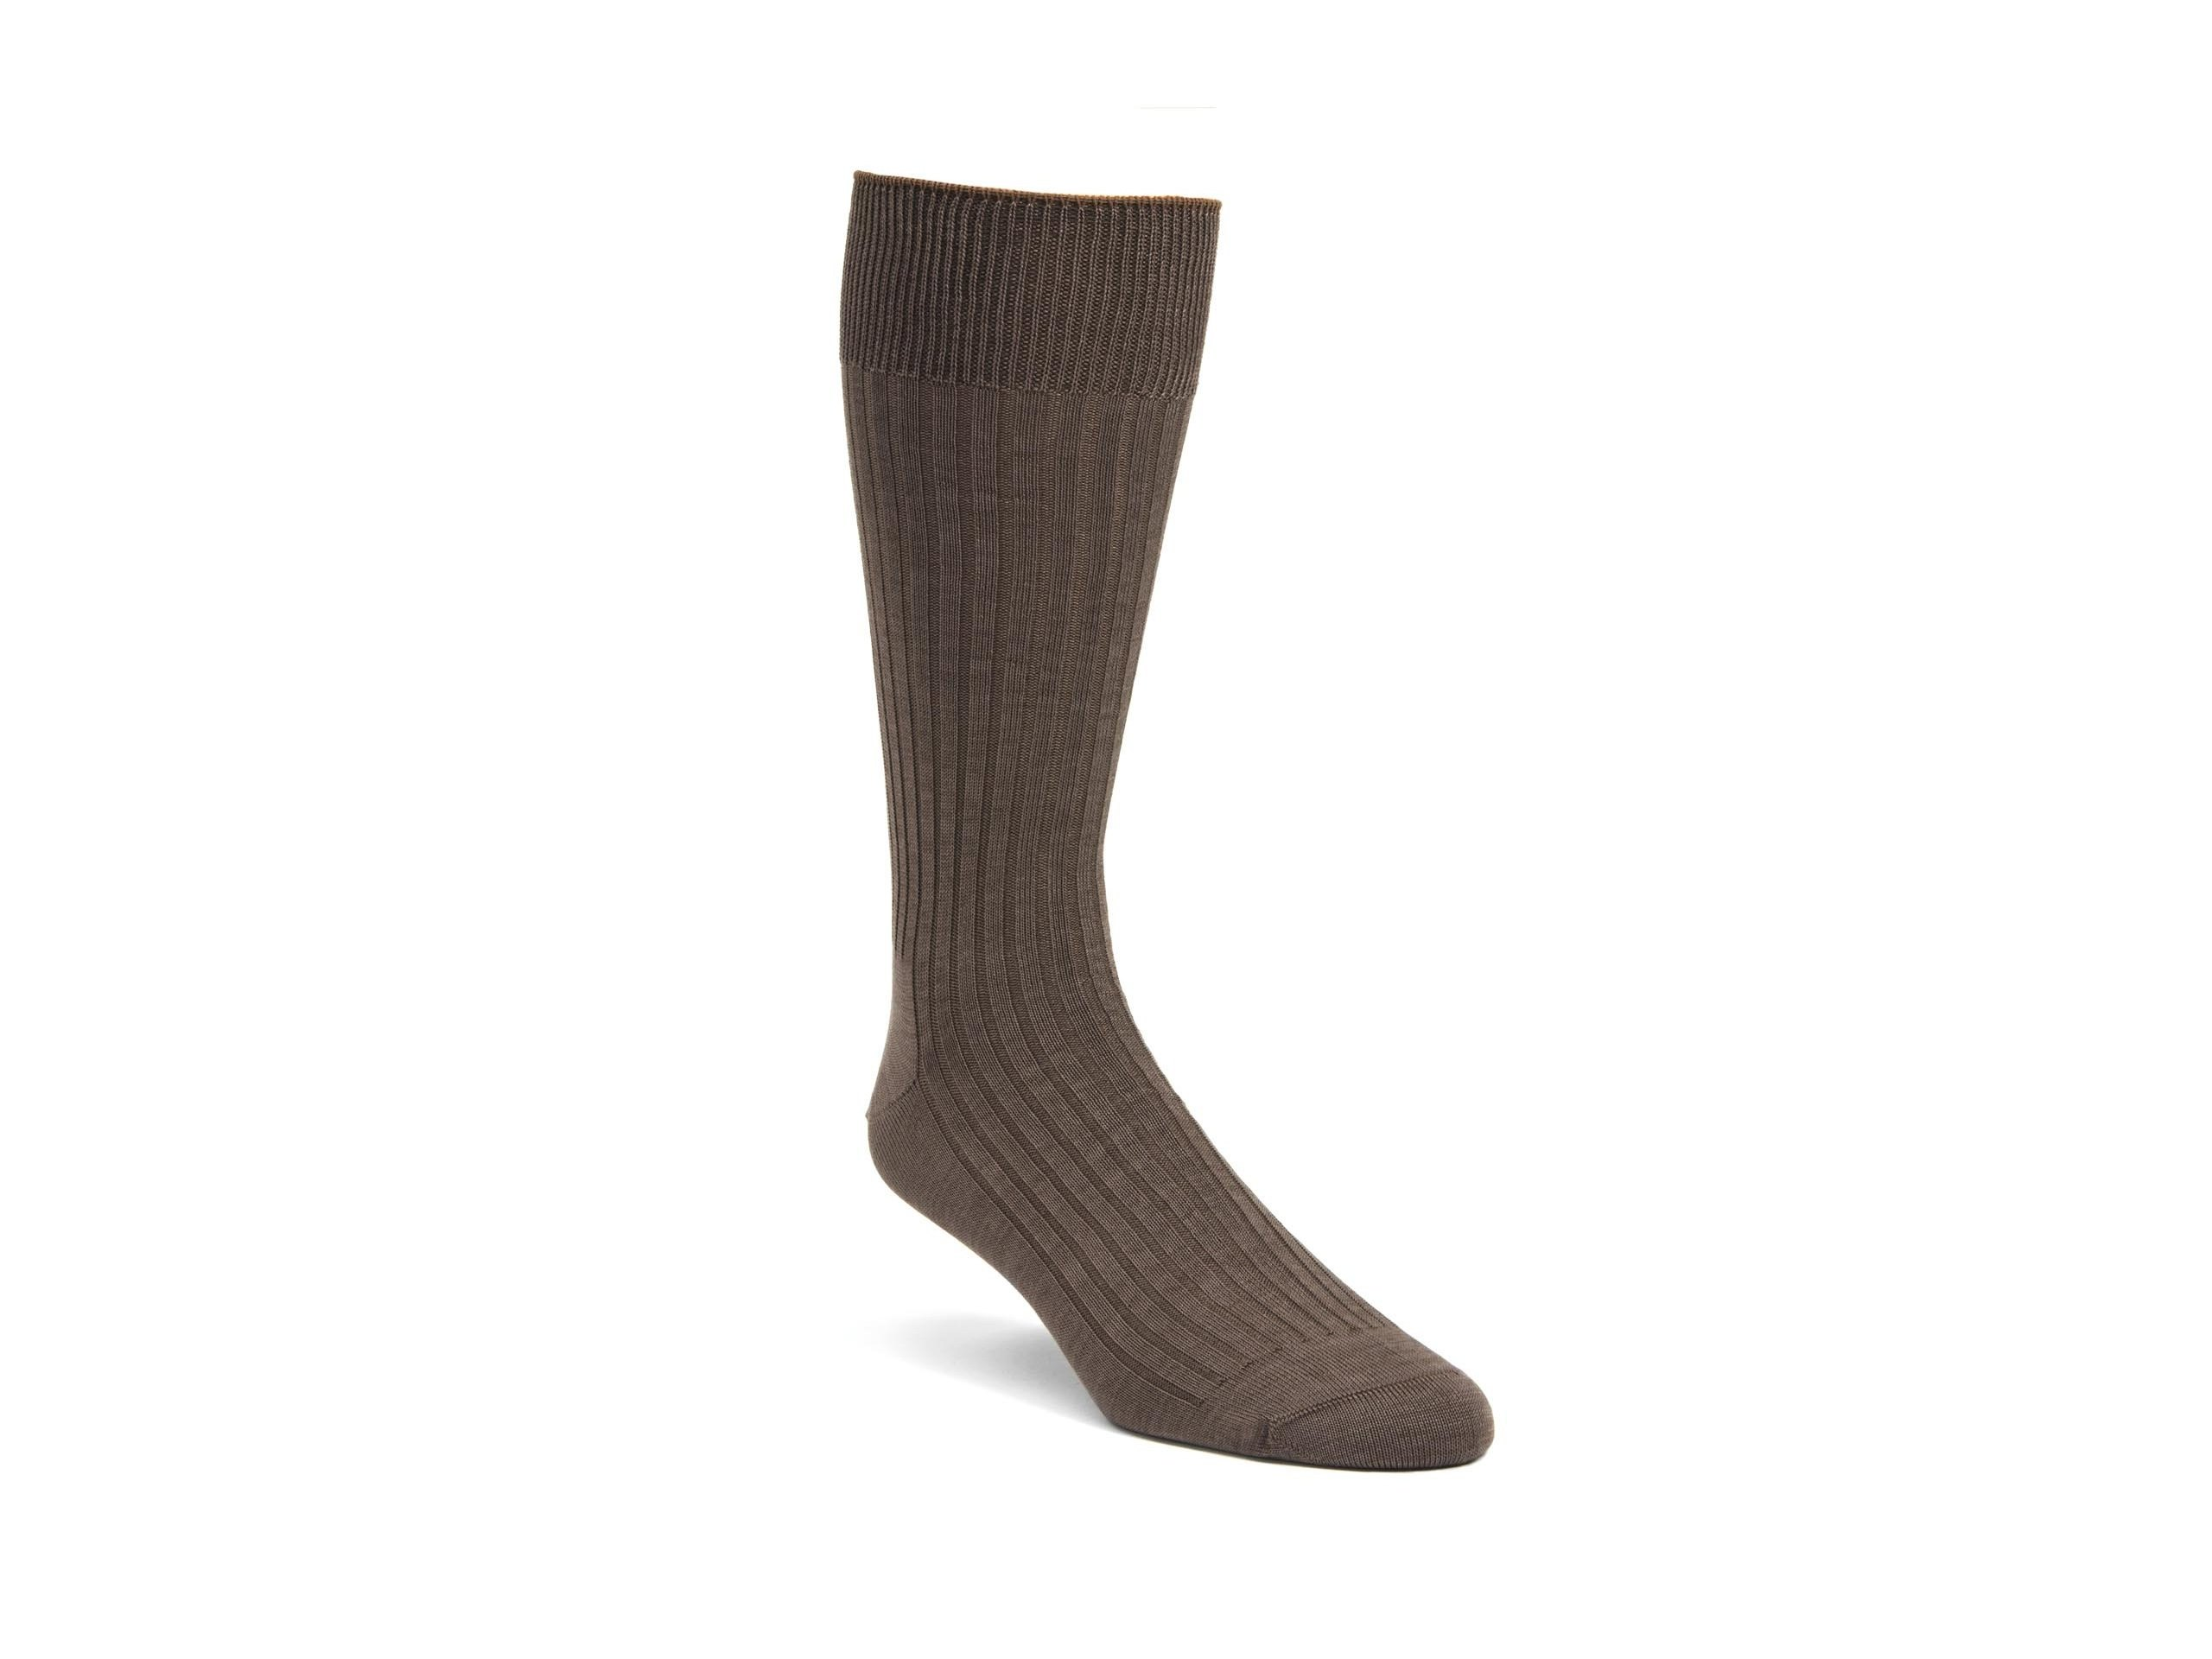 Product Shot of Casual Light Brown Socks